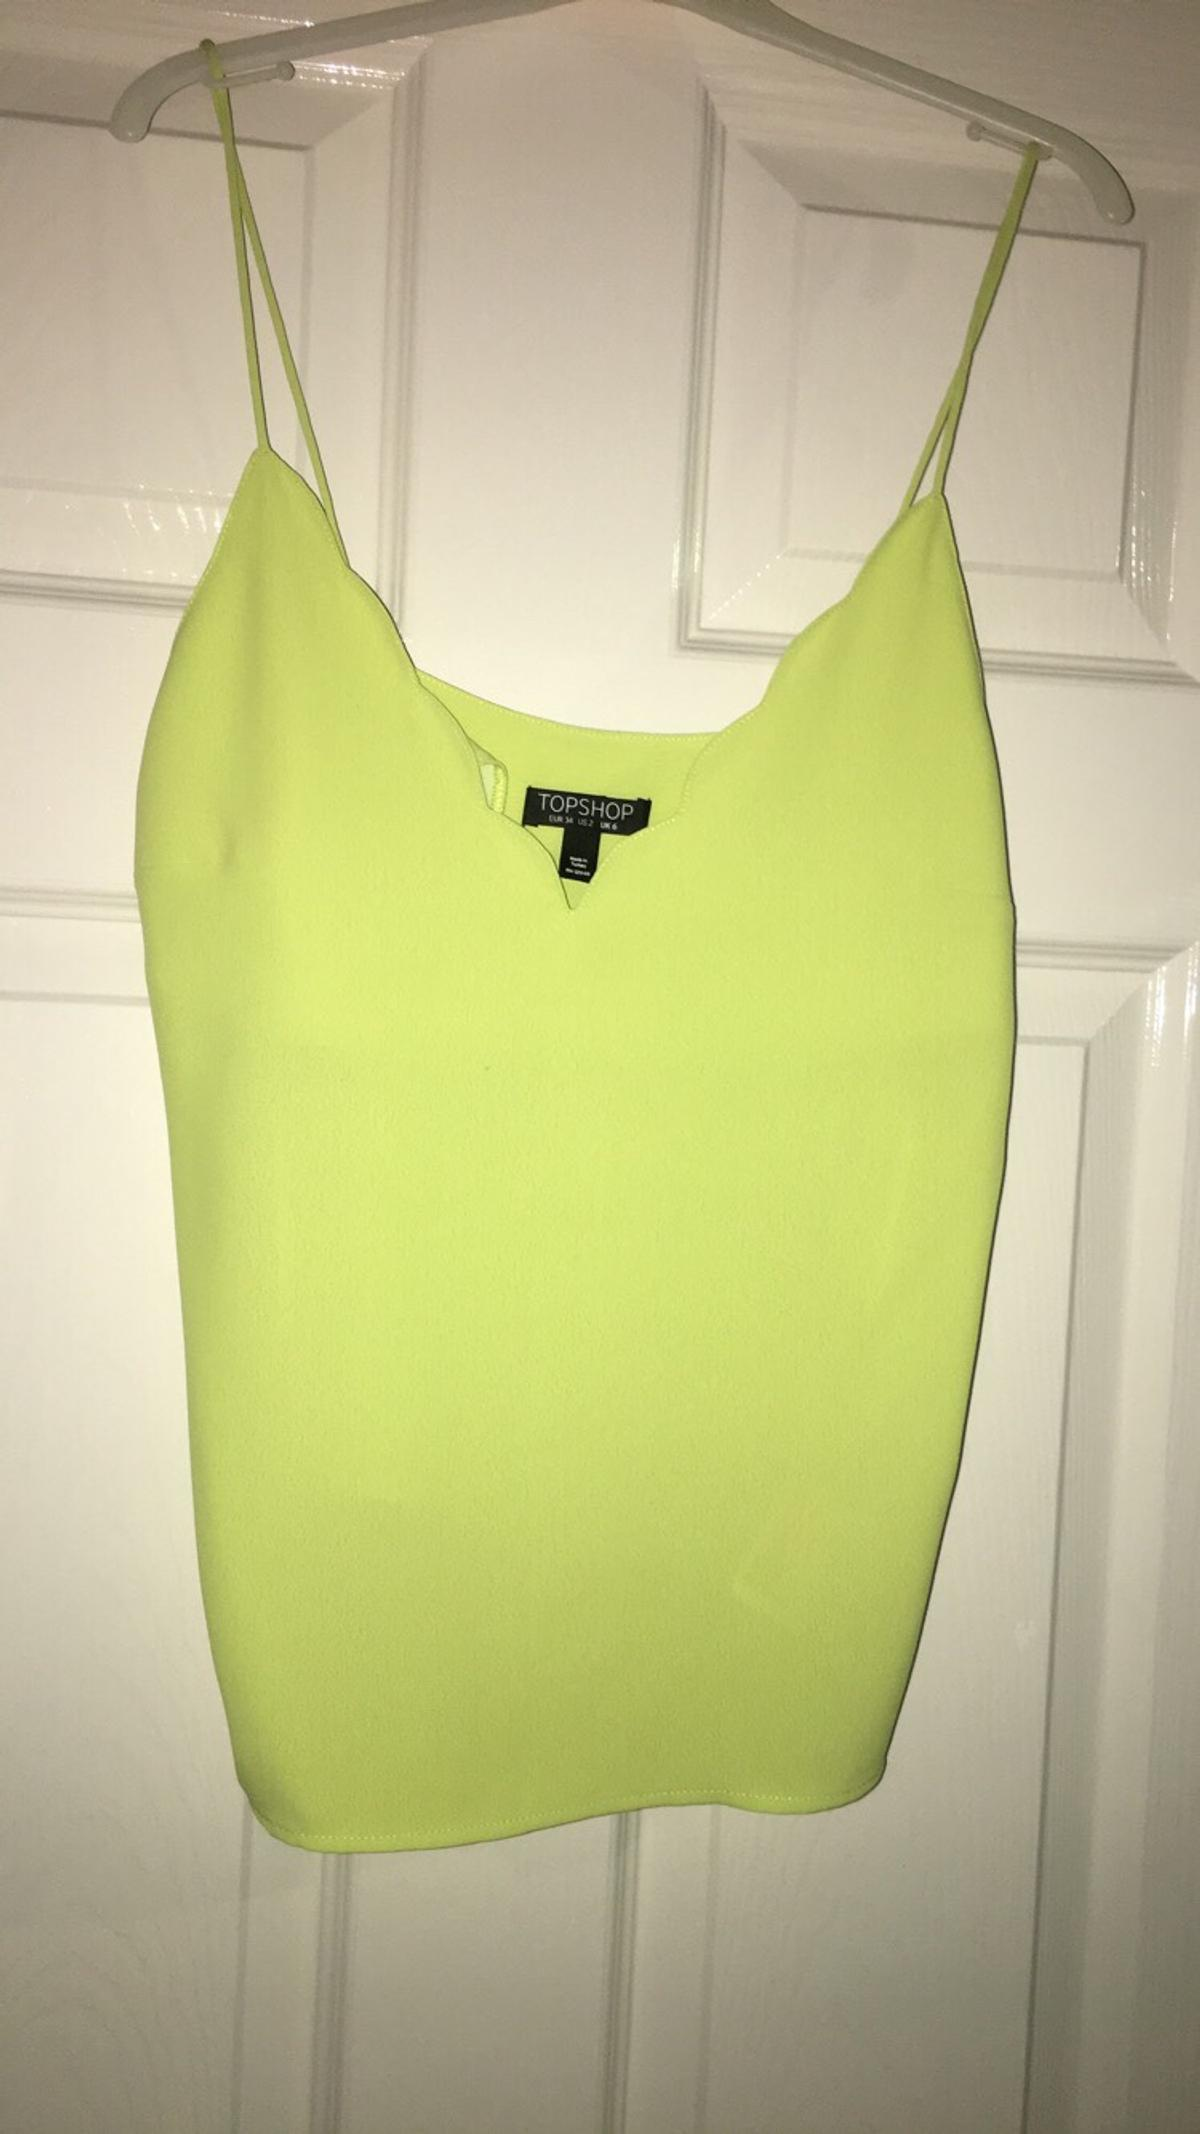 e3366ce51d6 Neon Topshop Brand New with tags in Hardwick for £5.00 for sale - Shpock